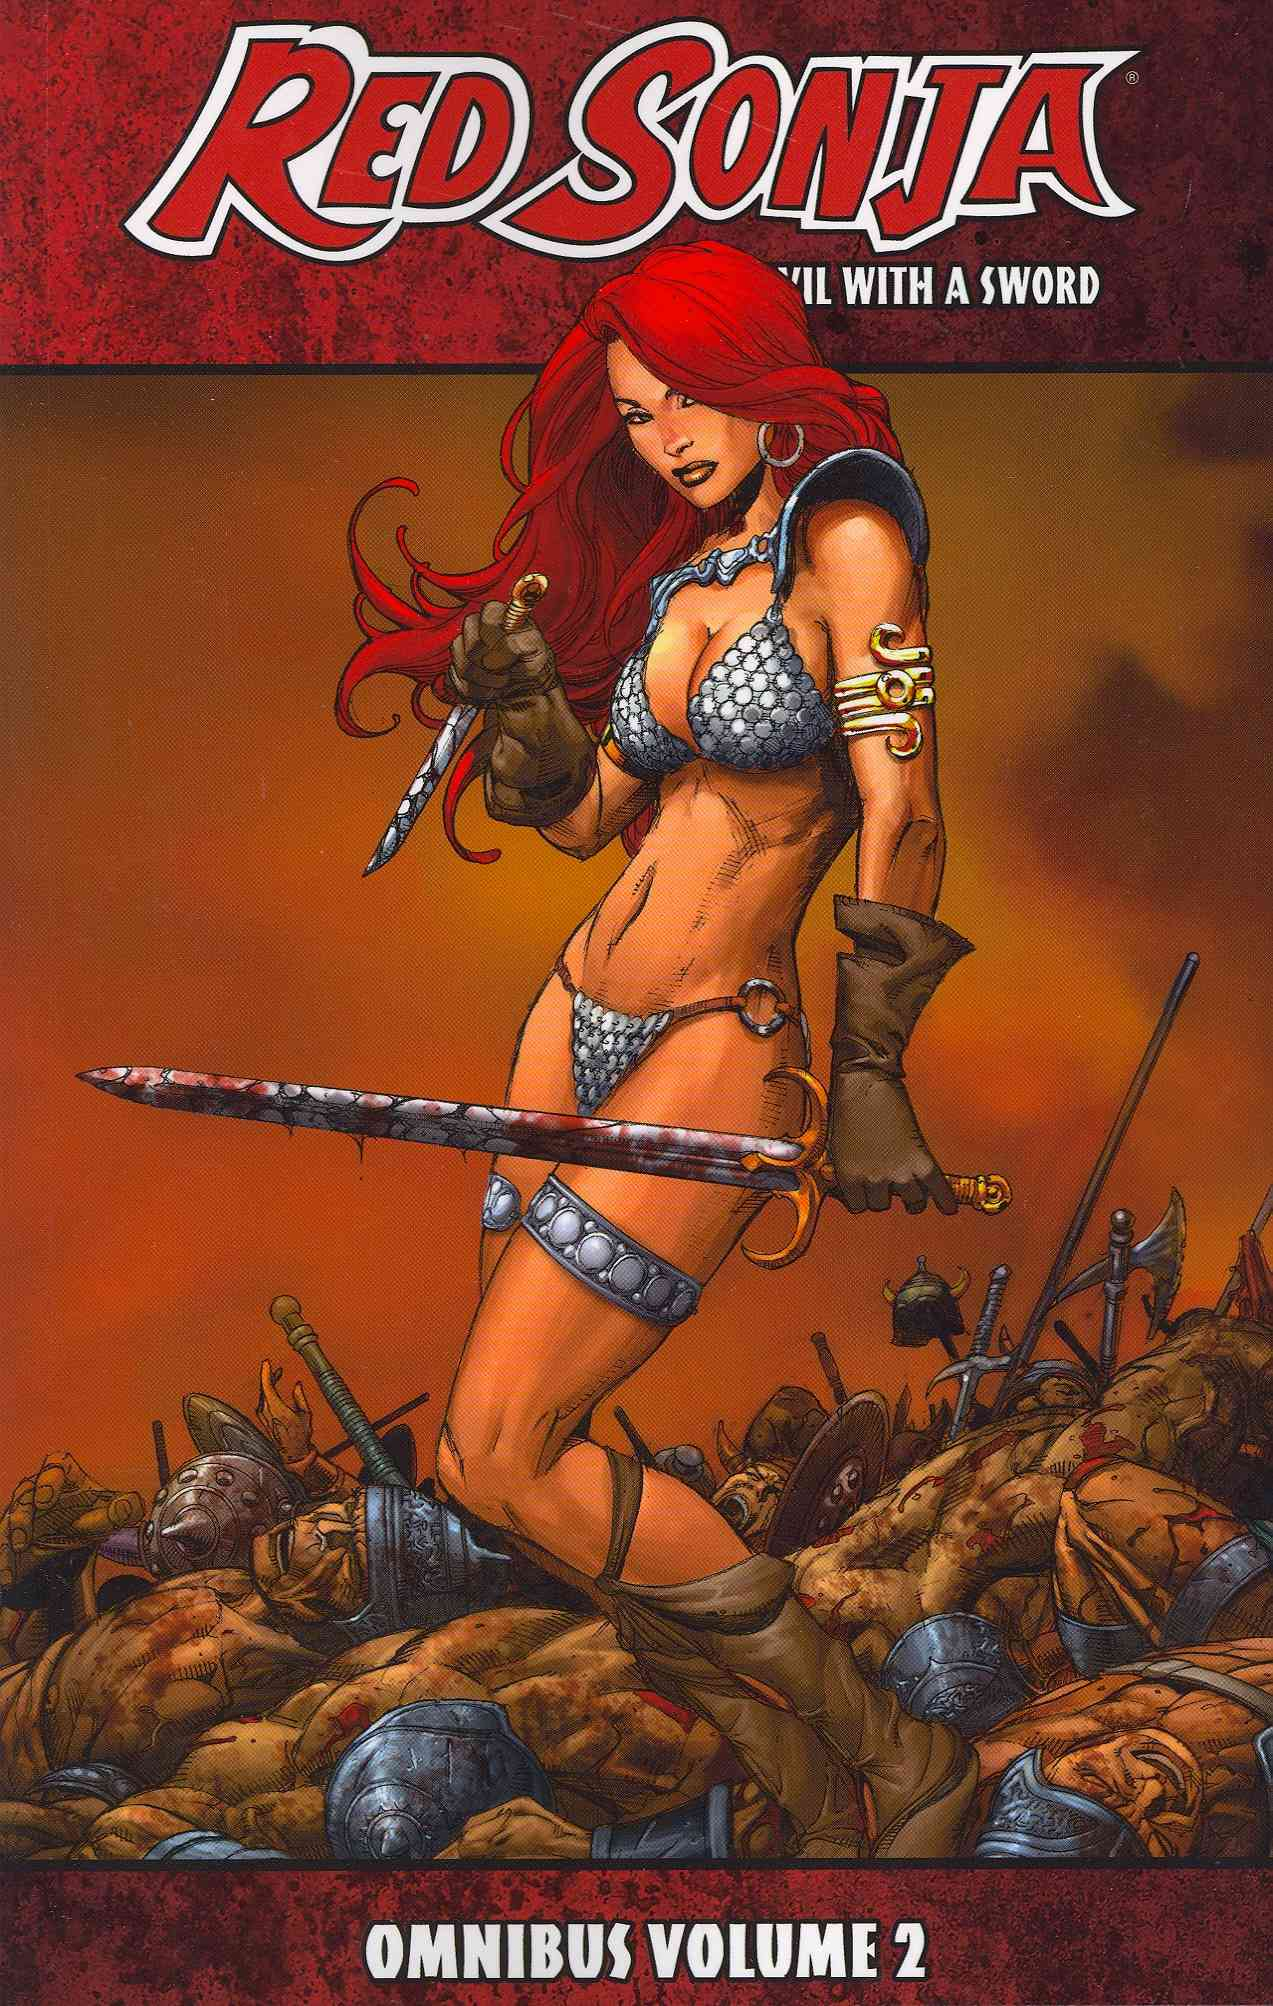 Red Sonja Omnibus 2: She-devil With a Sword (Paperback) - Thumbnail 0